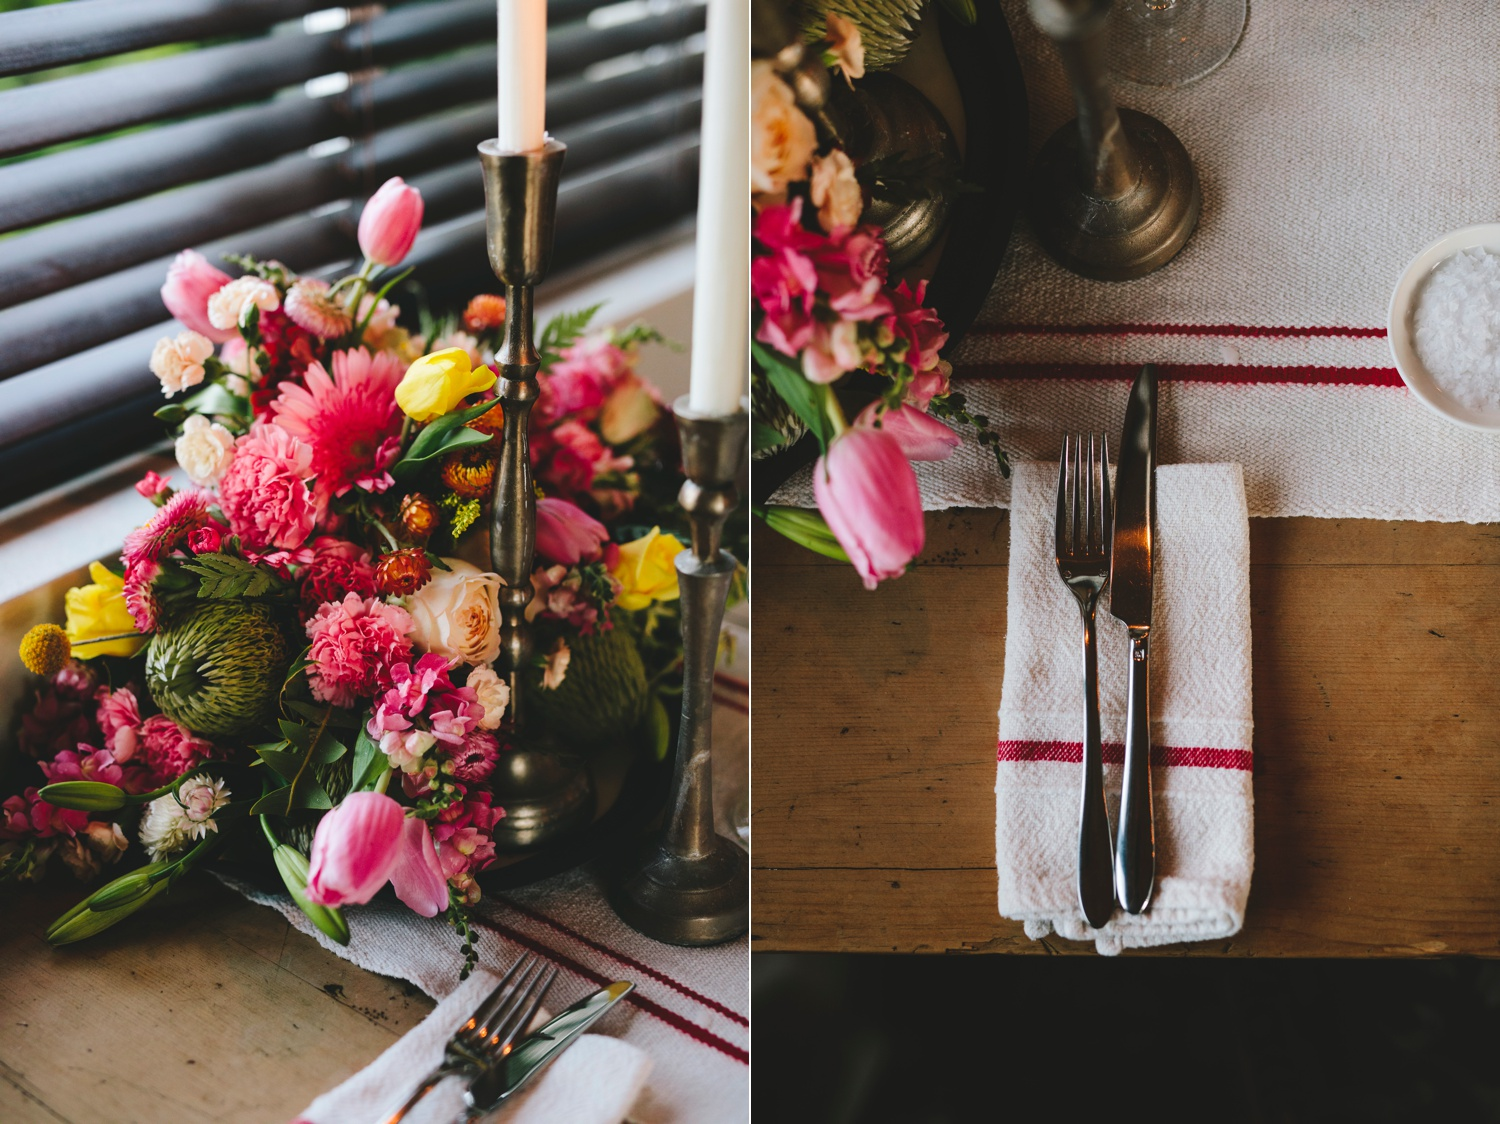 charlie_ray_photography_runaway_romance_elopement_emily_moon_plett_simple_boho_wedding_south_africa_bohemium_0112.jpg